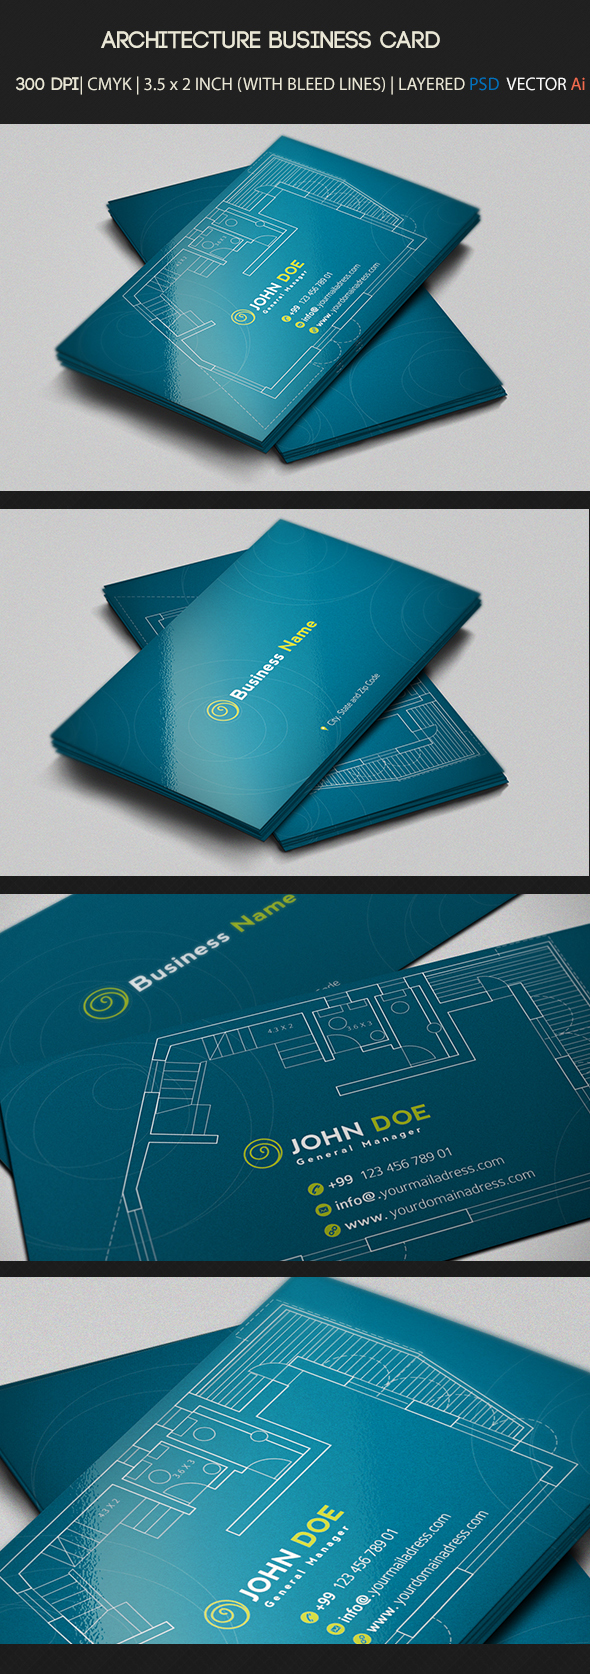 35 architect business card designs for inspiration creatives wall architect business card designs for inspiration 1597851269737406 1597851269738205 reheart Choice Image